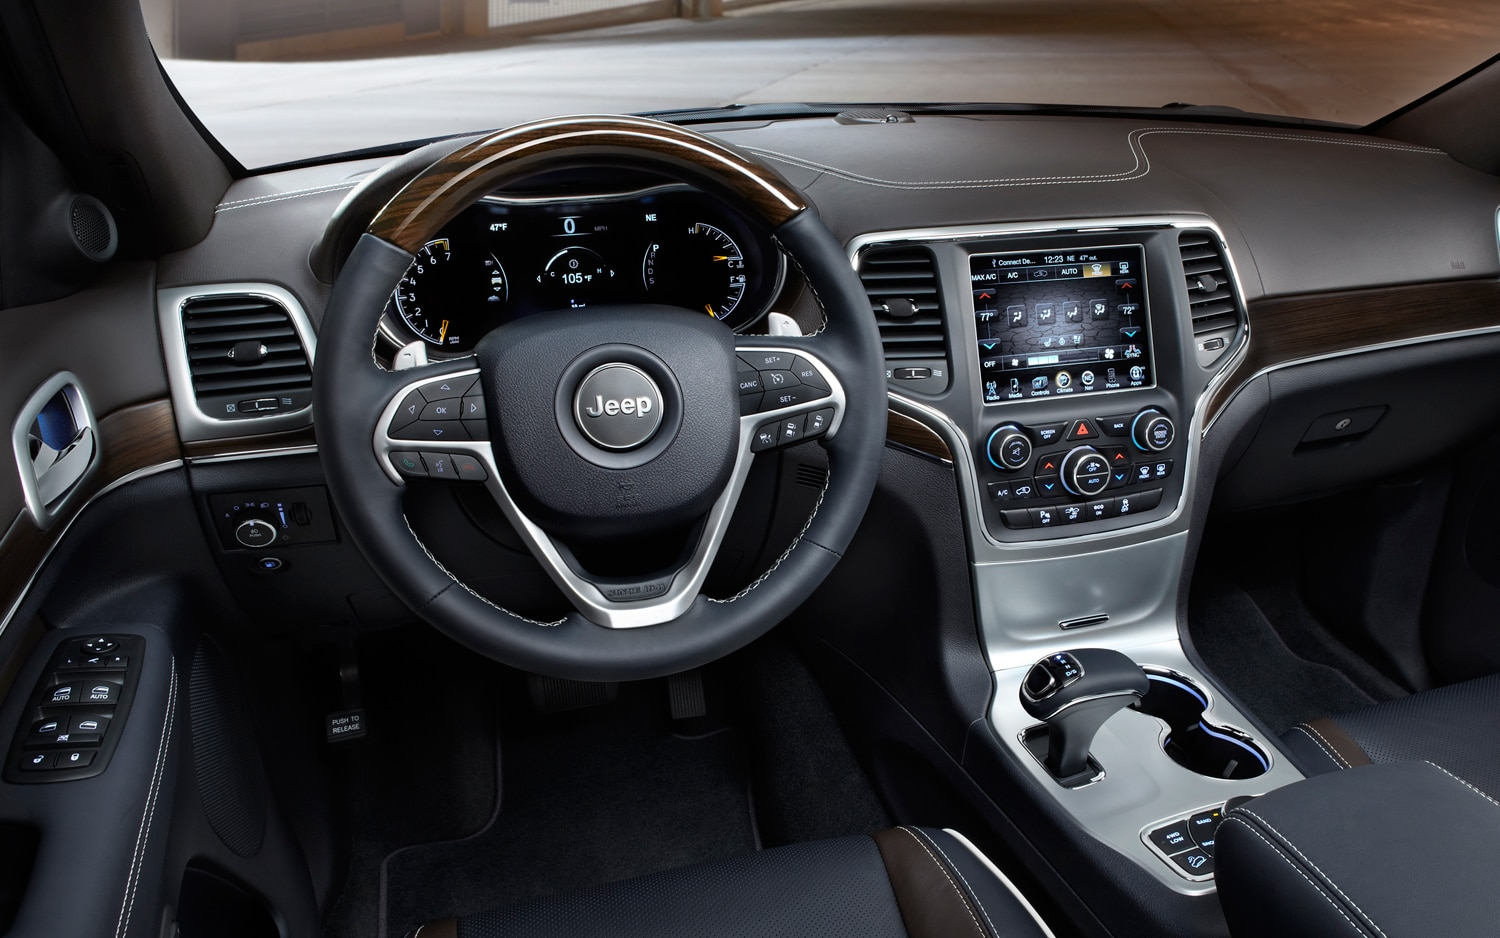 2014 Jeep Grand Cherokee Overland Dash View